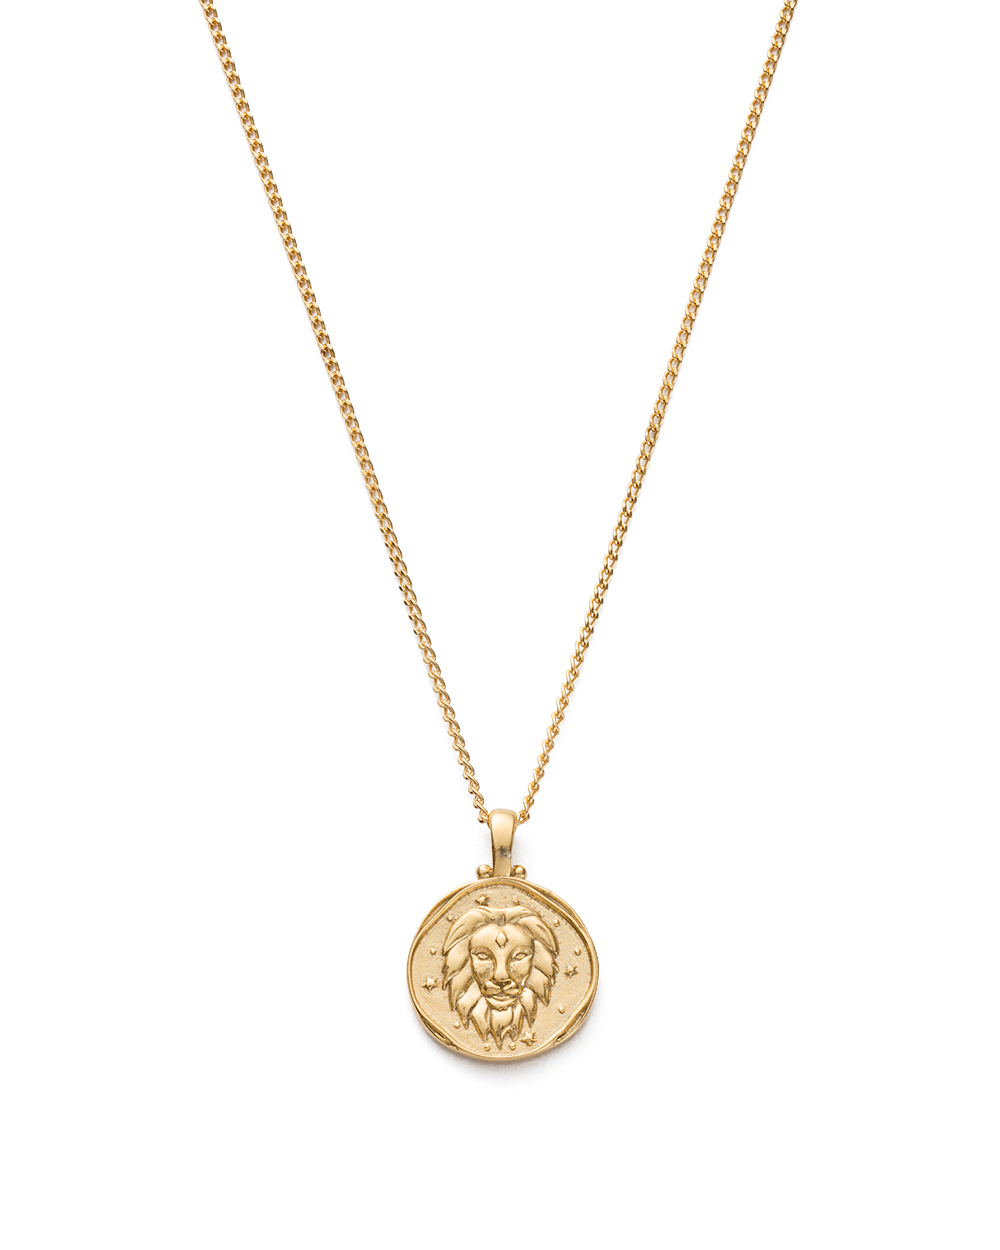 LEO ZODIAC NECKLACE (18K-GOLD-VERMEIL)